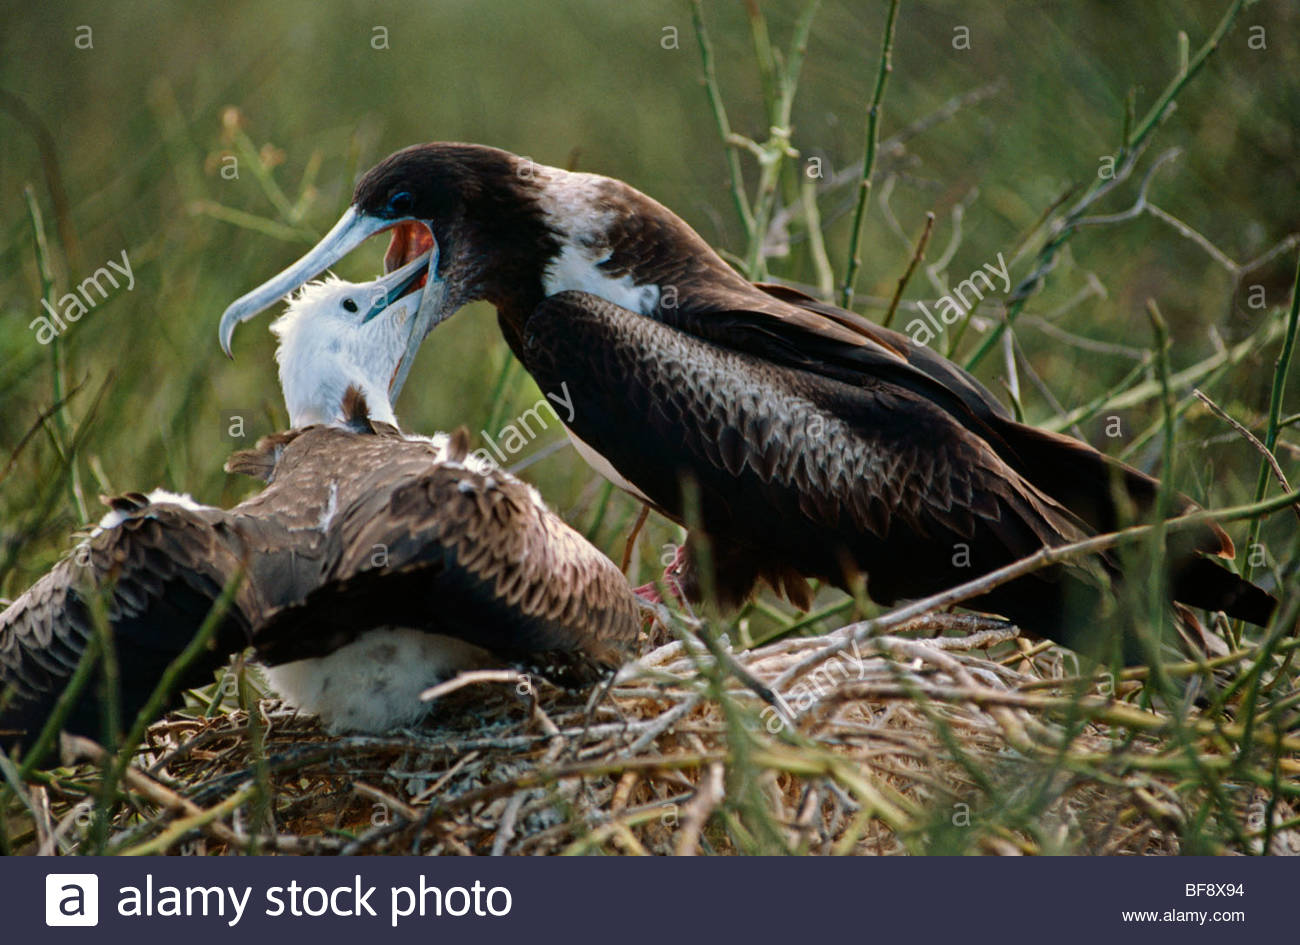 Great frigatebird feeding chick, Fregata minor, Galapagos Islands - Stock Image